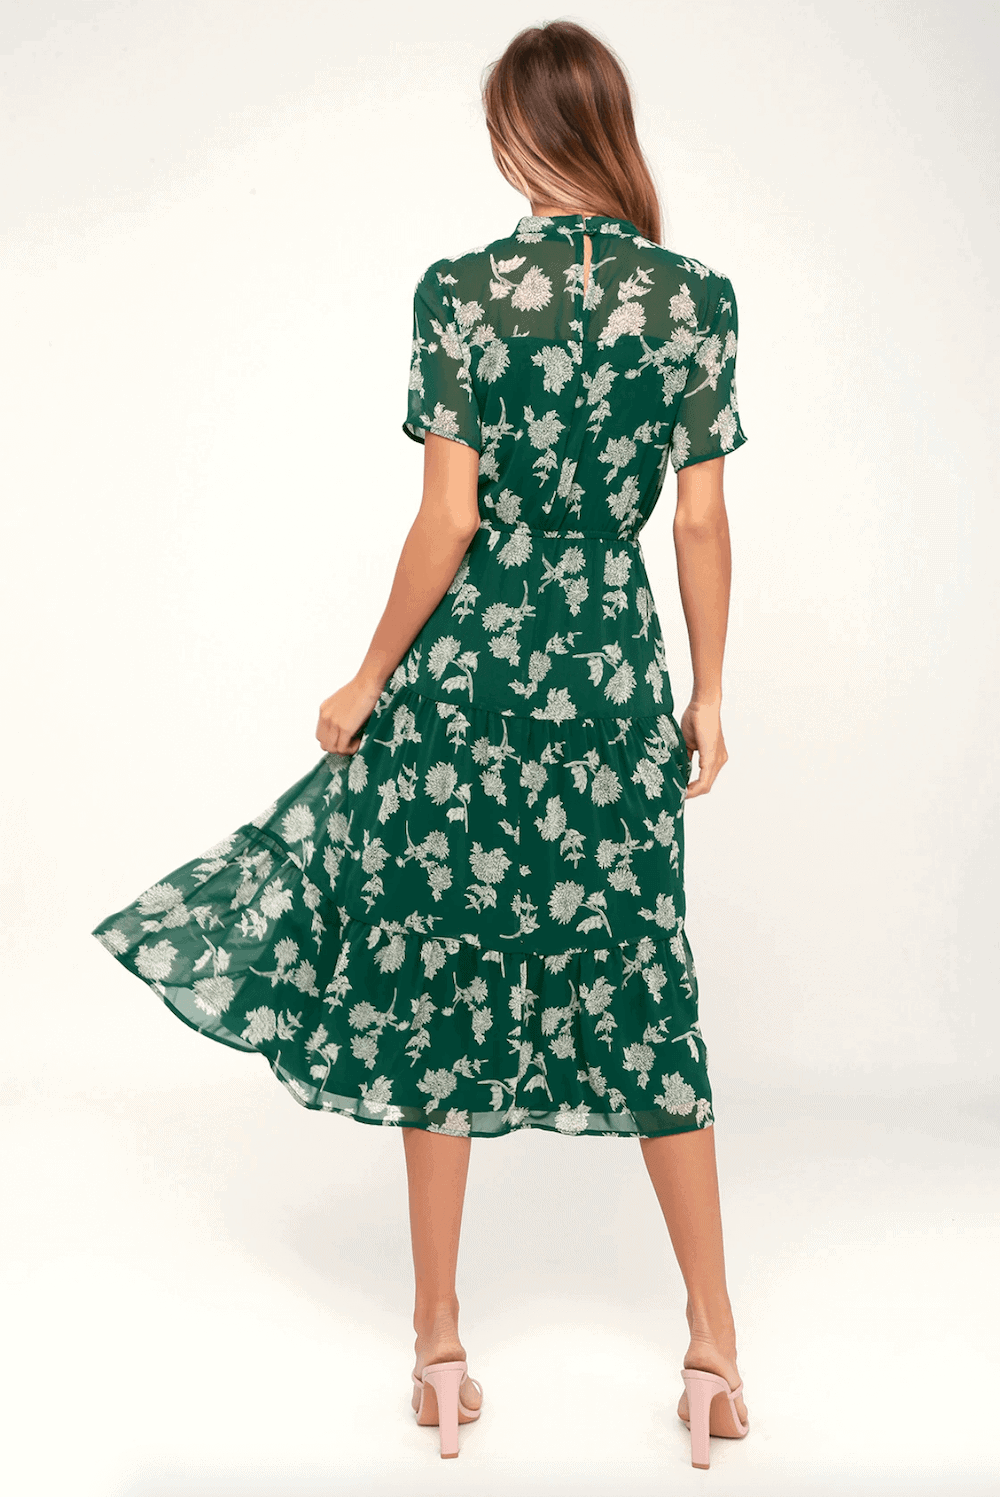 Wedding Guest Outfits Green Floral Print Dress What to Wear to a Wedding as a Guest 2 (1)